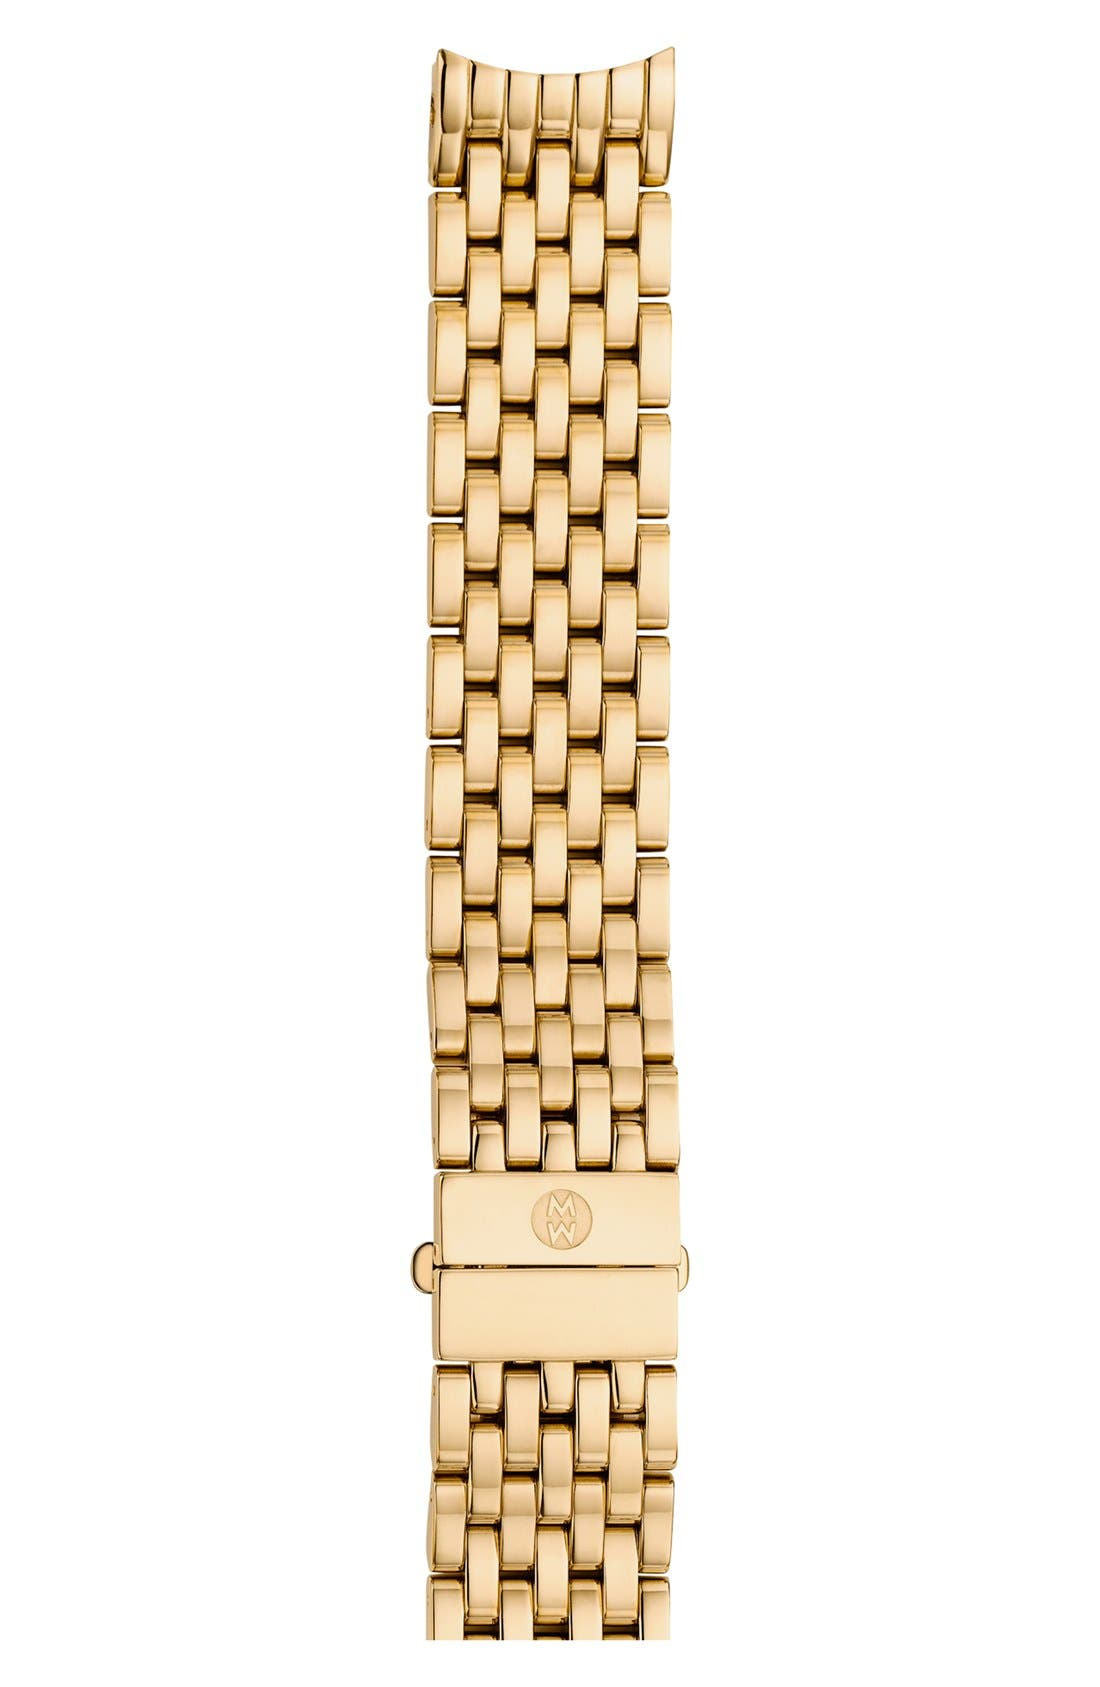 Serein 16mm Gold Plated Bracelet Watchband,                             Main thumbnail 1, color,                             GOLD